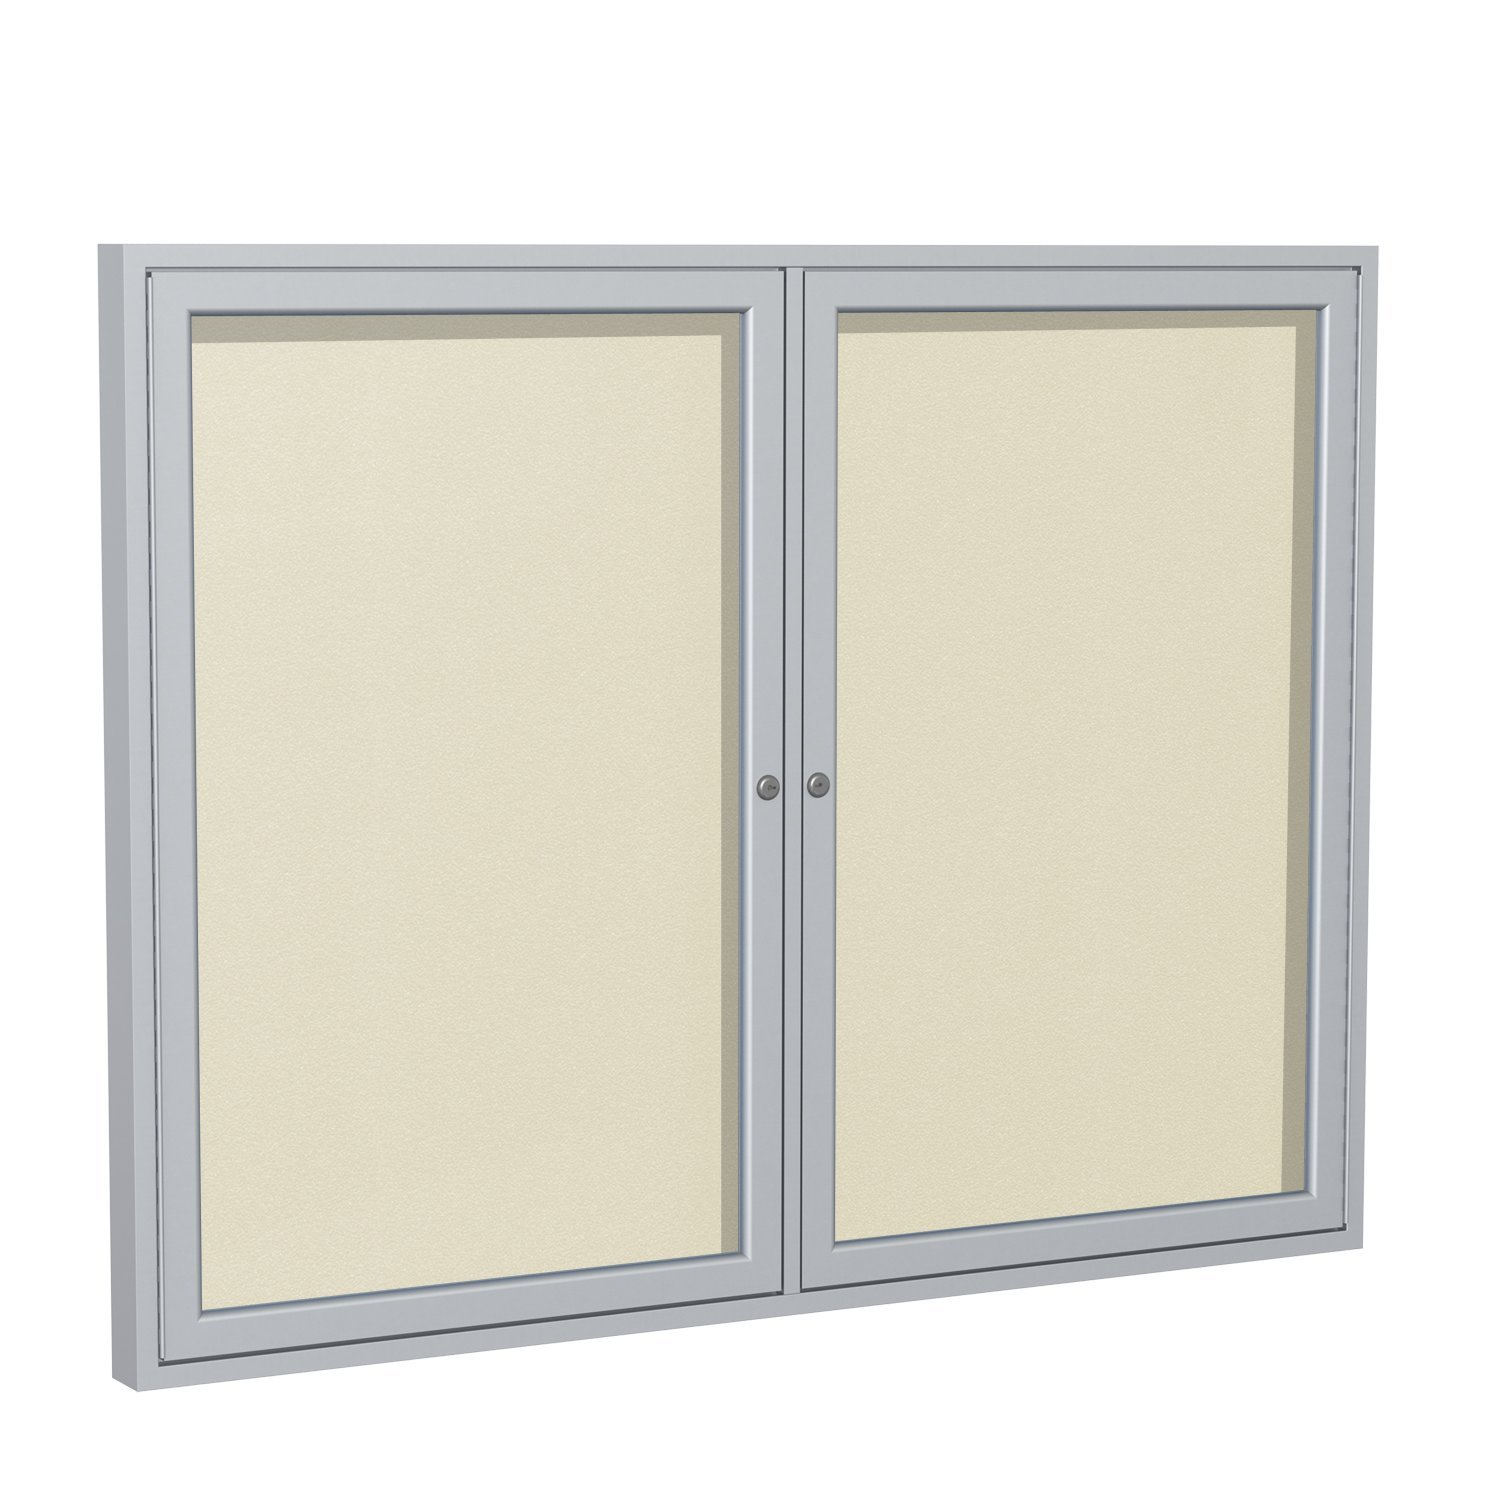 Ghent 36''x48''  2-Door Outdoor Enclosed Vinyl Bulletin Board, Shatter Resistant, with Lock, Satin Aluminum Frame - Ivory (PA23648VX-185 ), Made in the USA by Ghent